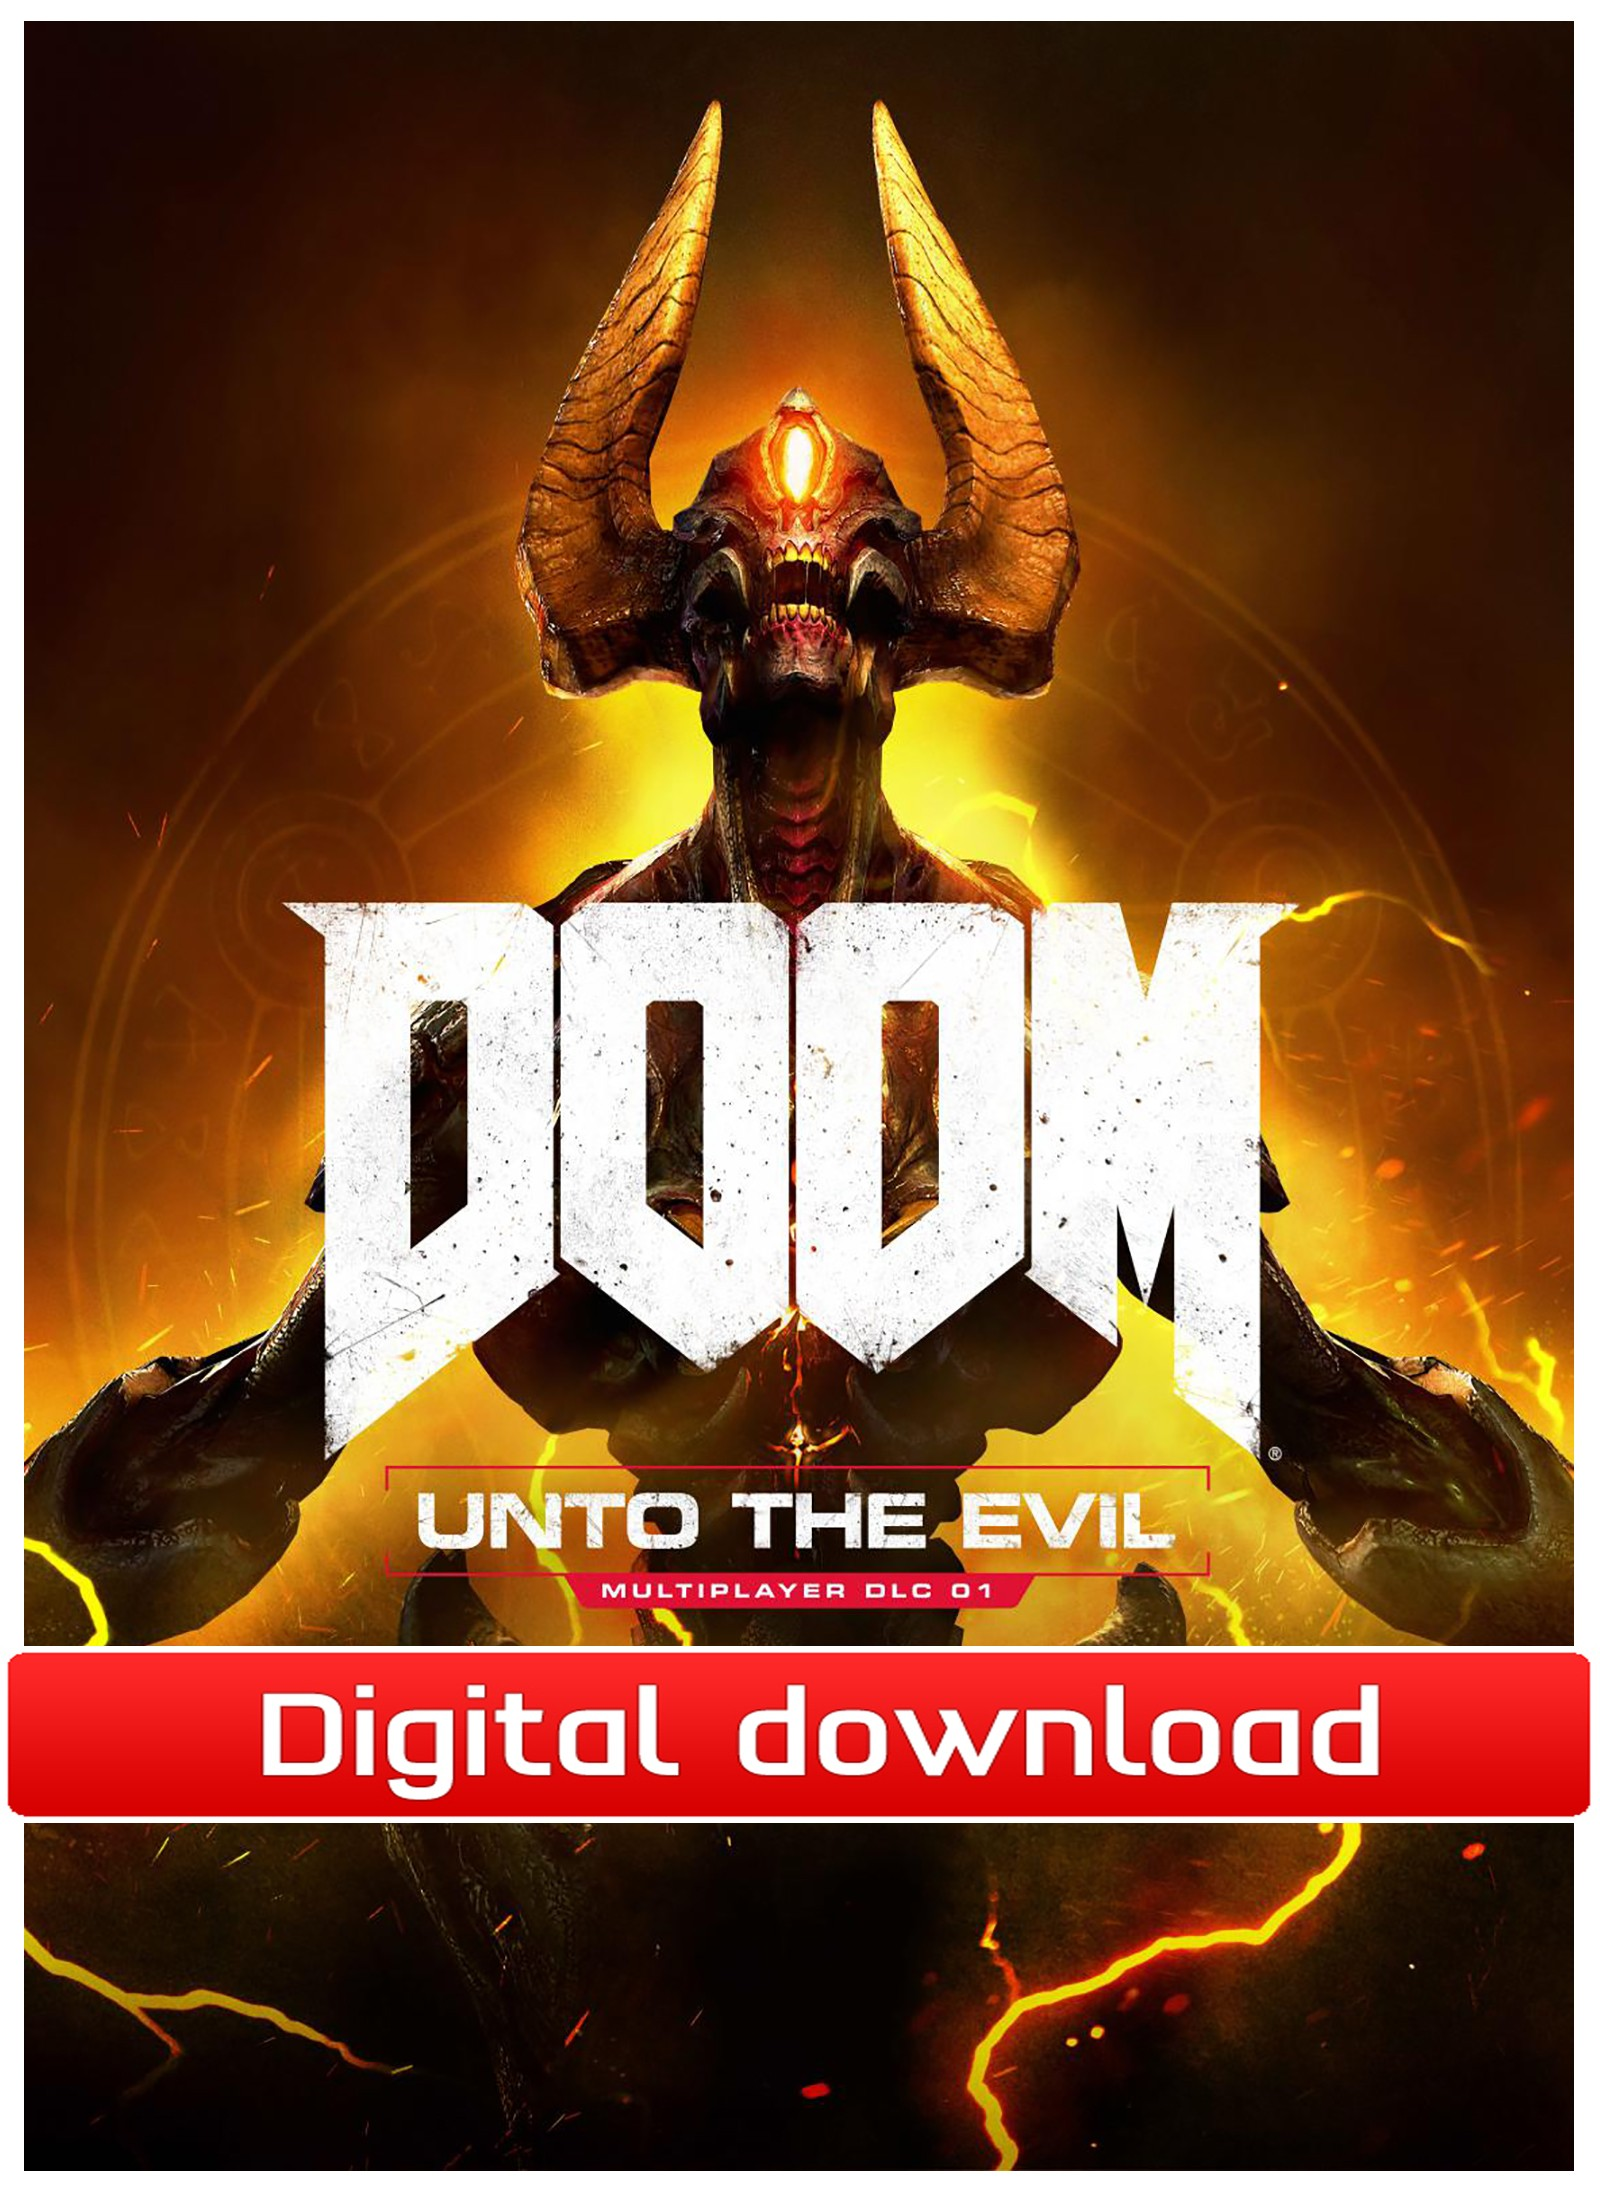 40129 : DOOM - Unto The Evil DLC (PC nedlastning)